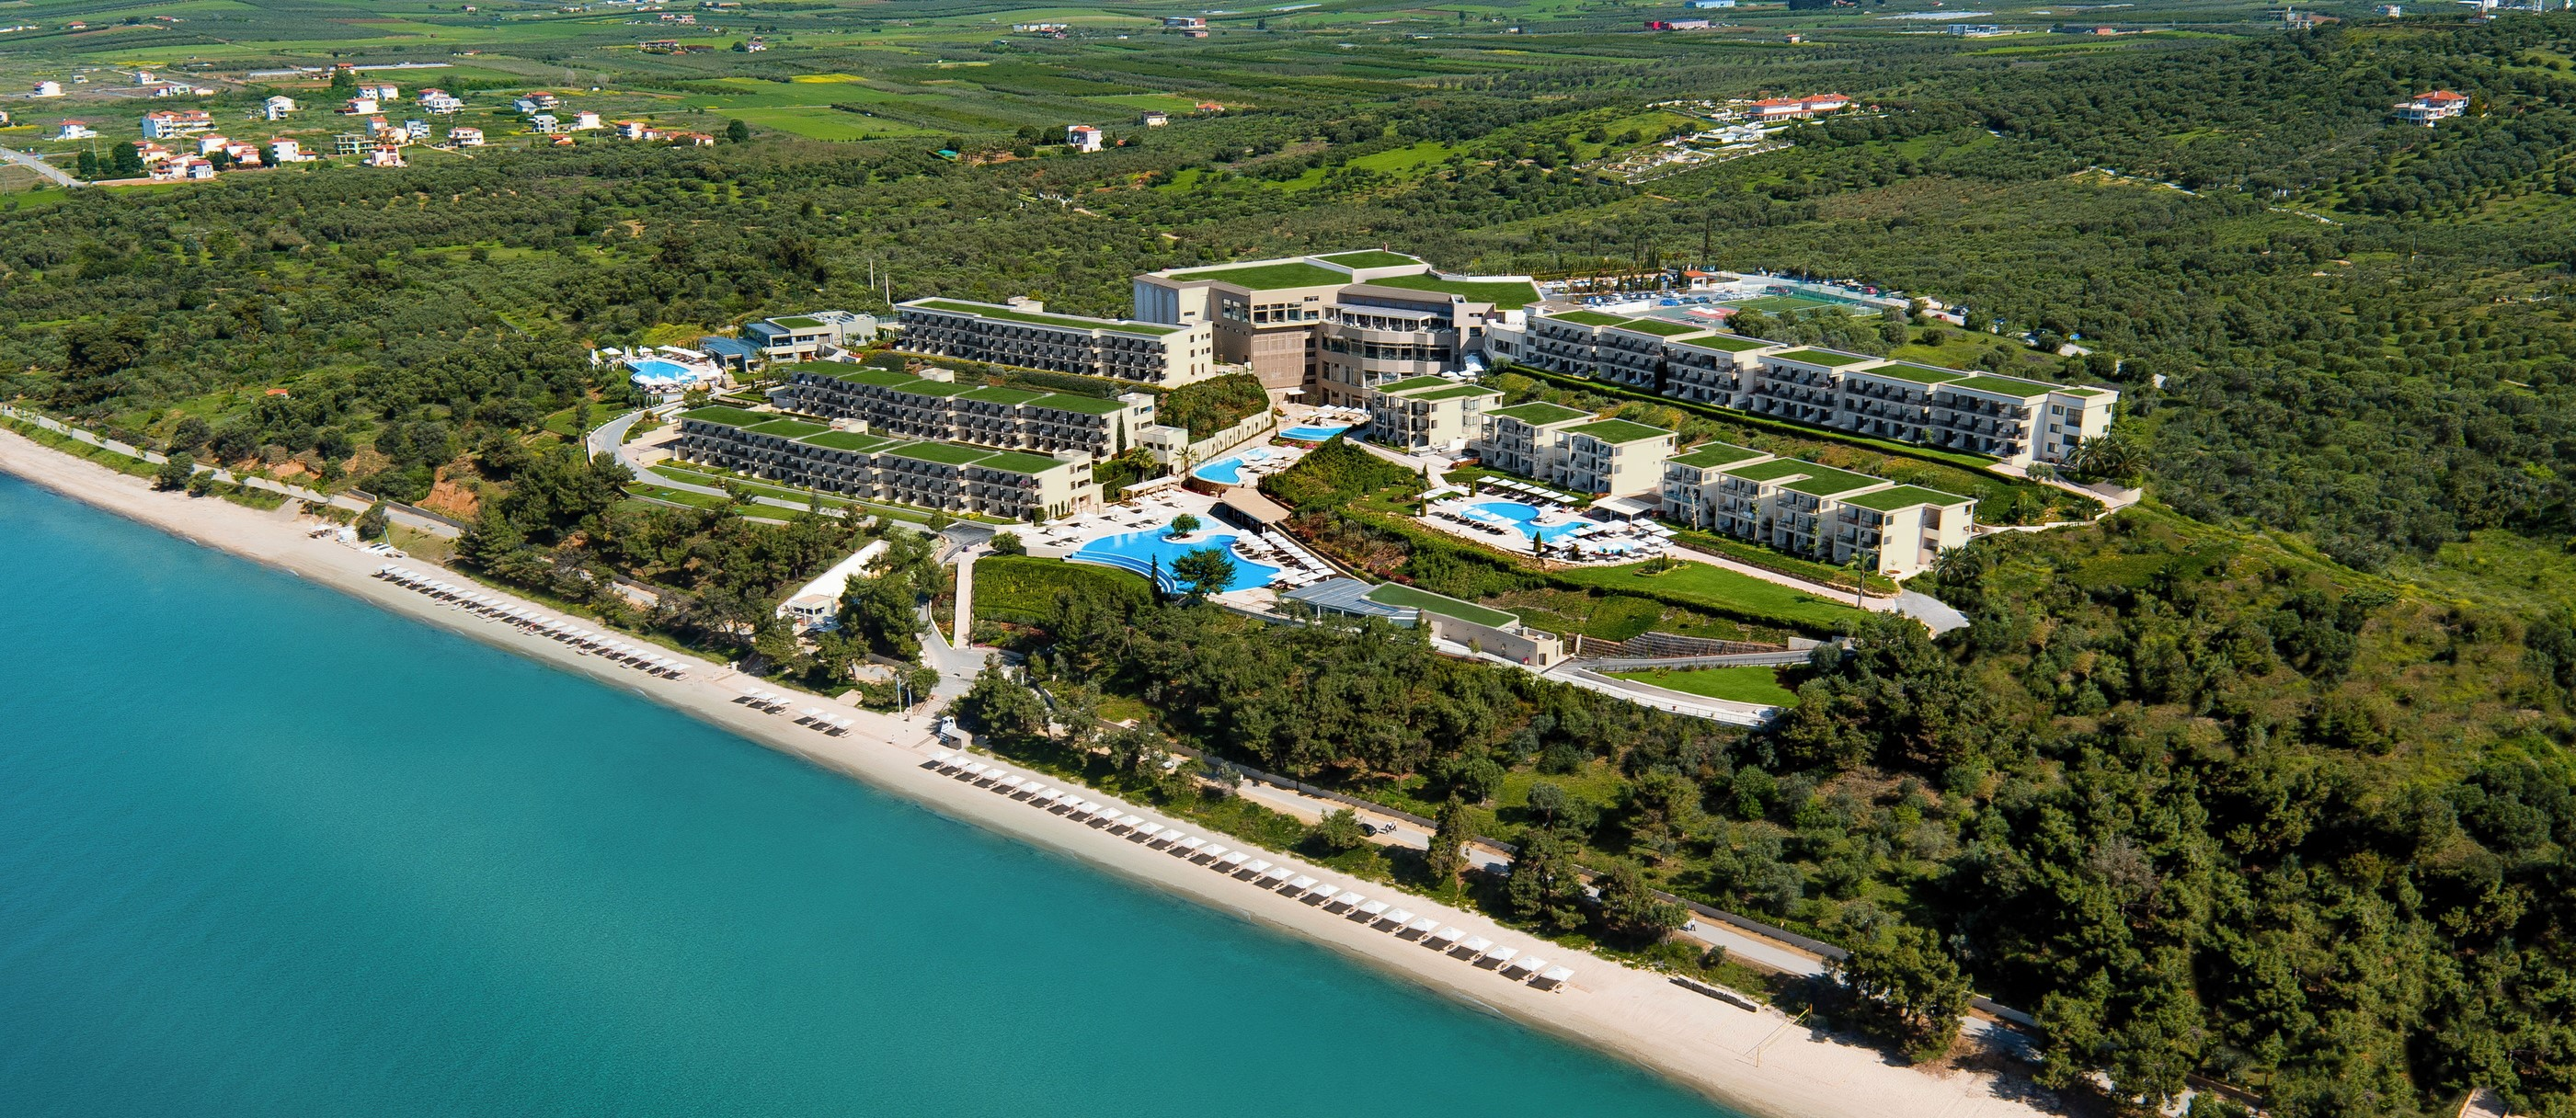 Ikos-Oceania-beach-resort-aerial